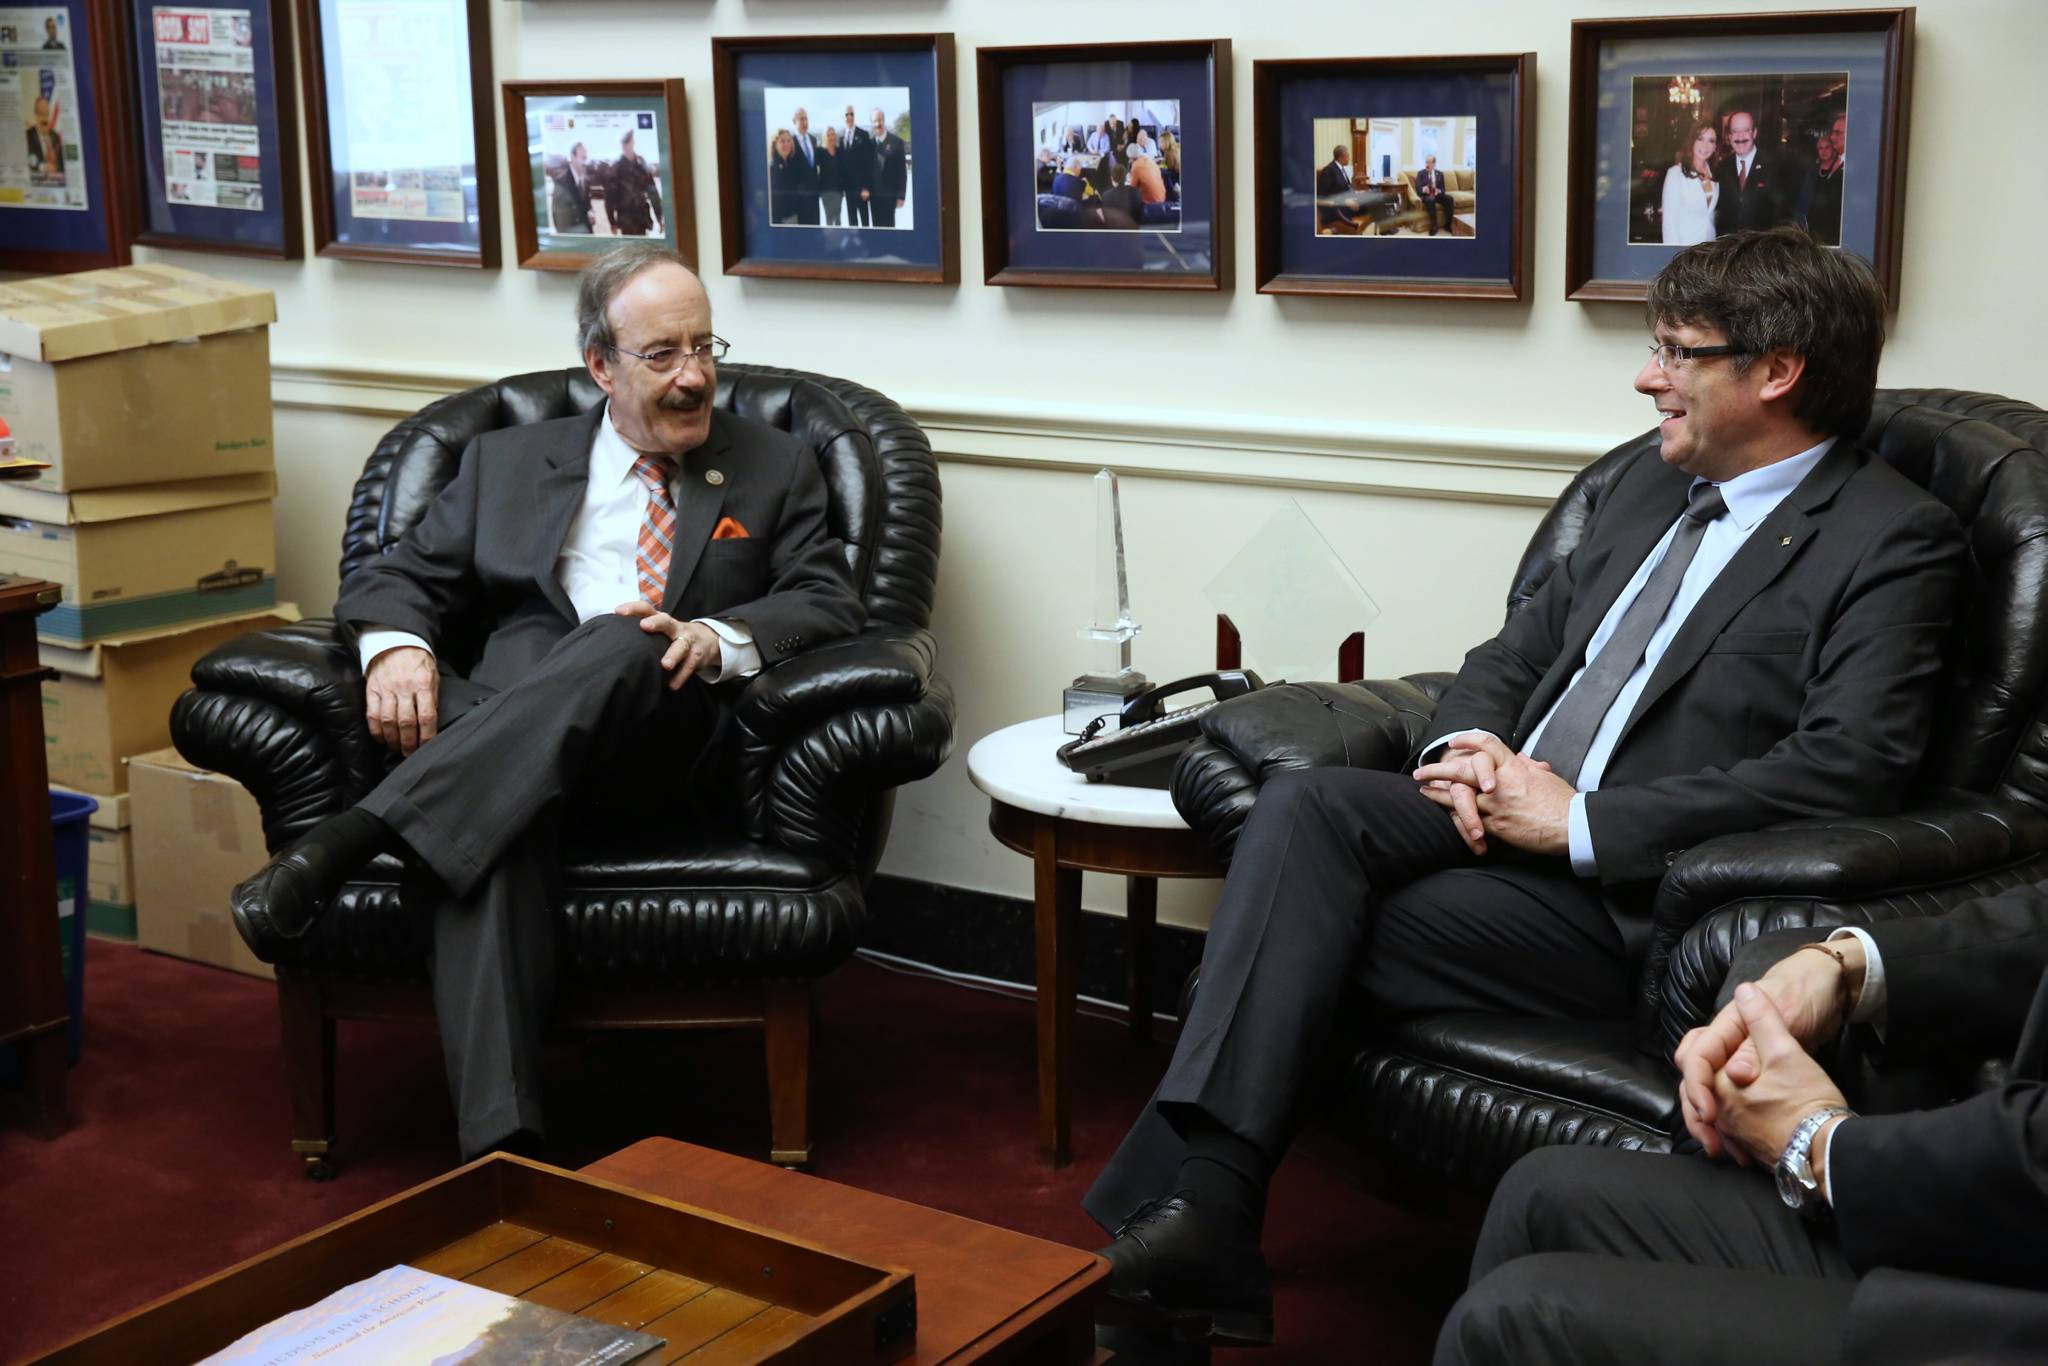 Meeting with Rep. Eliot Engel